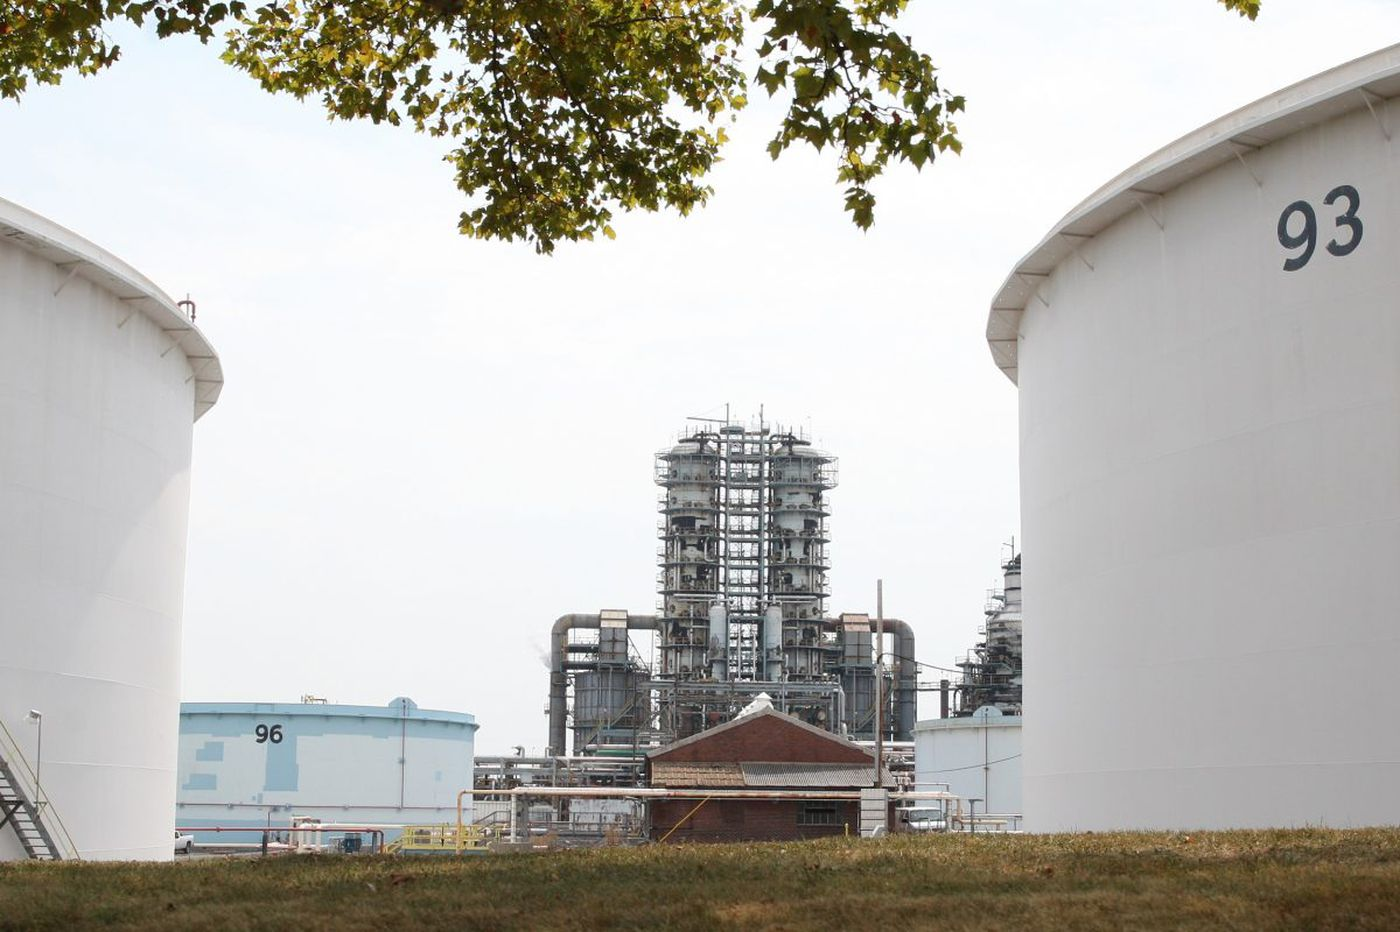 Philly refiners decry pipeline's proposed changes